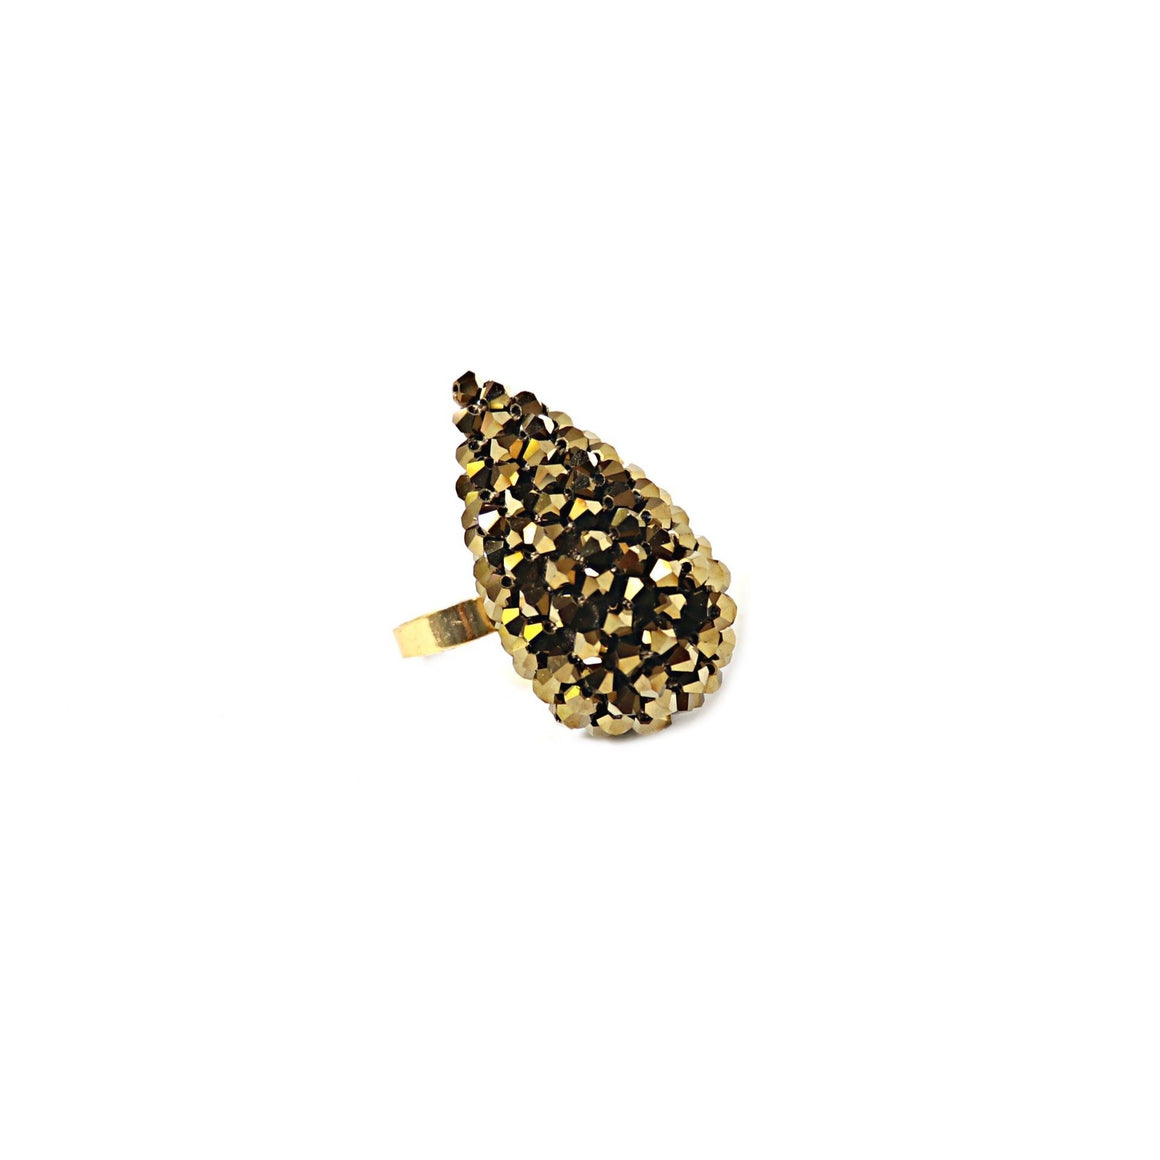 Alexis Finger Ring - Antique Gold